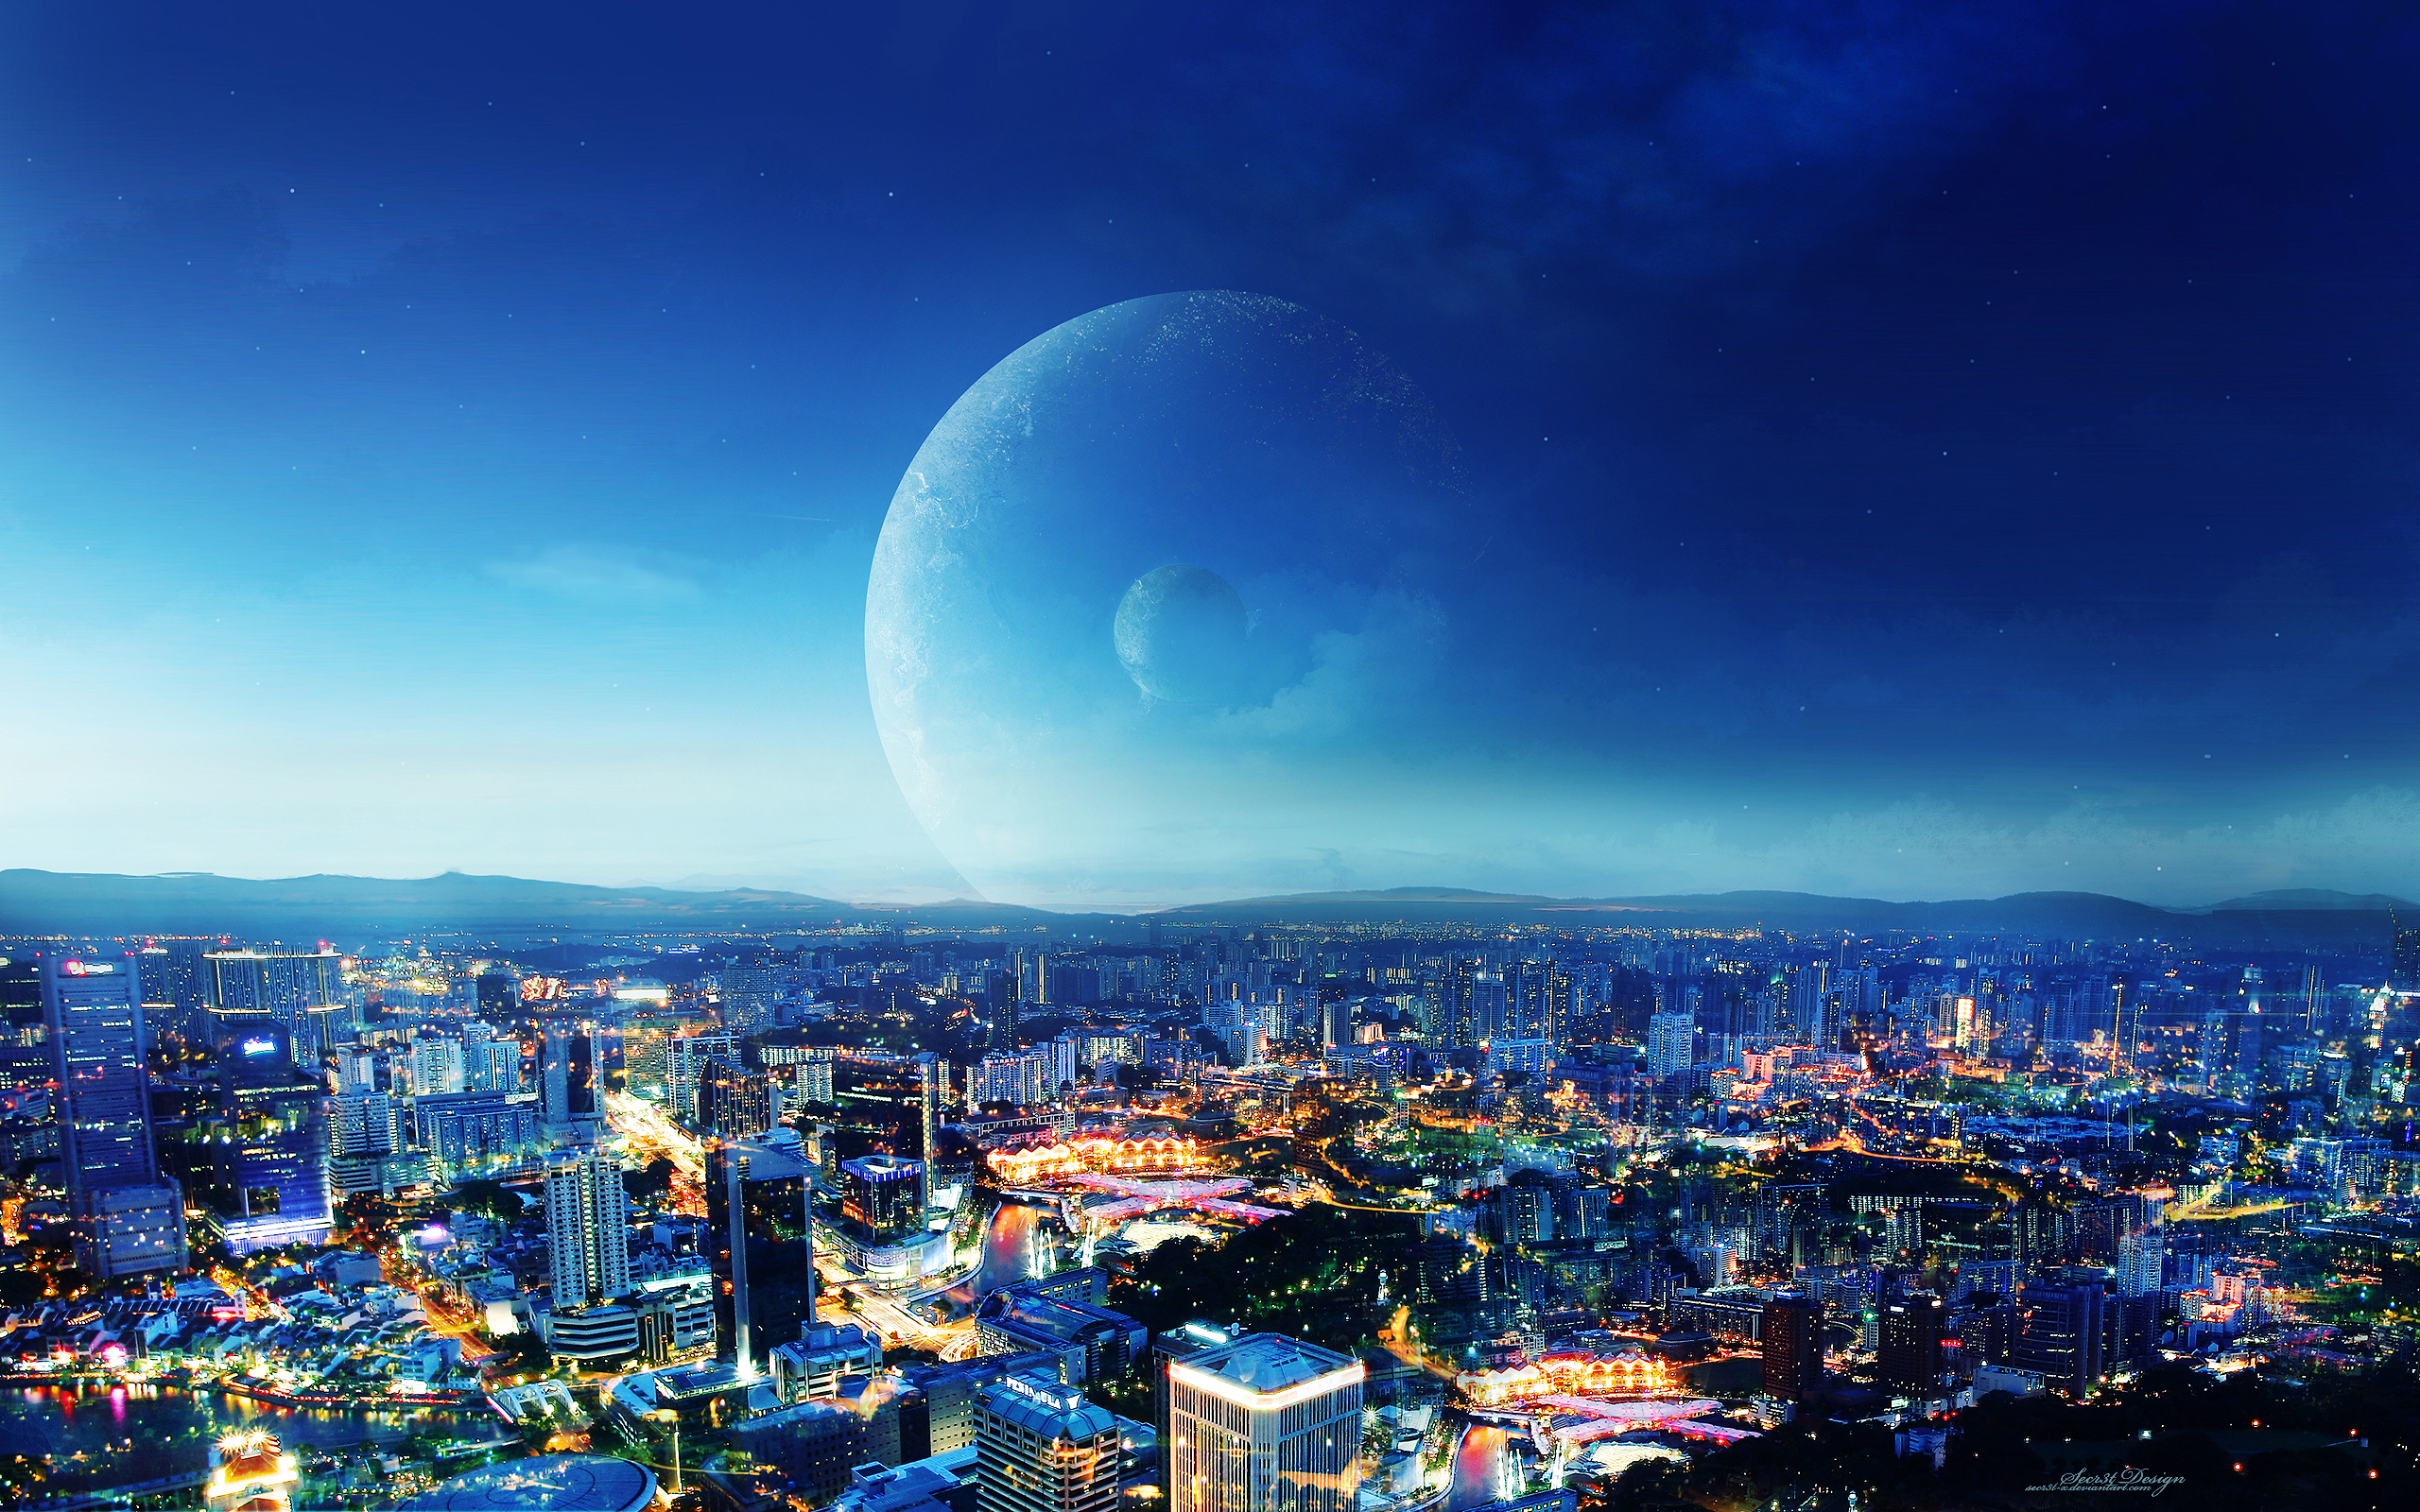 CIty Night Fantasy Wallpapers HD Wallpapers 2560x1600